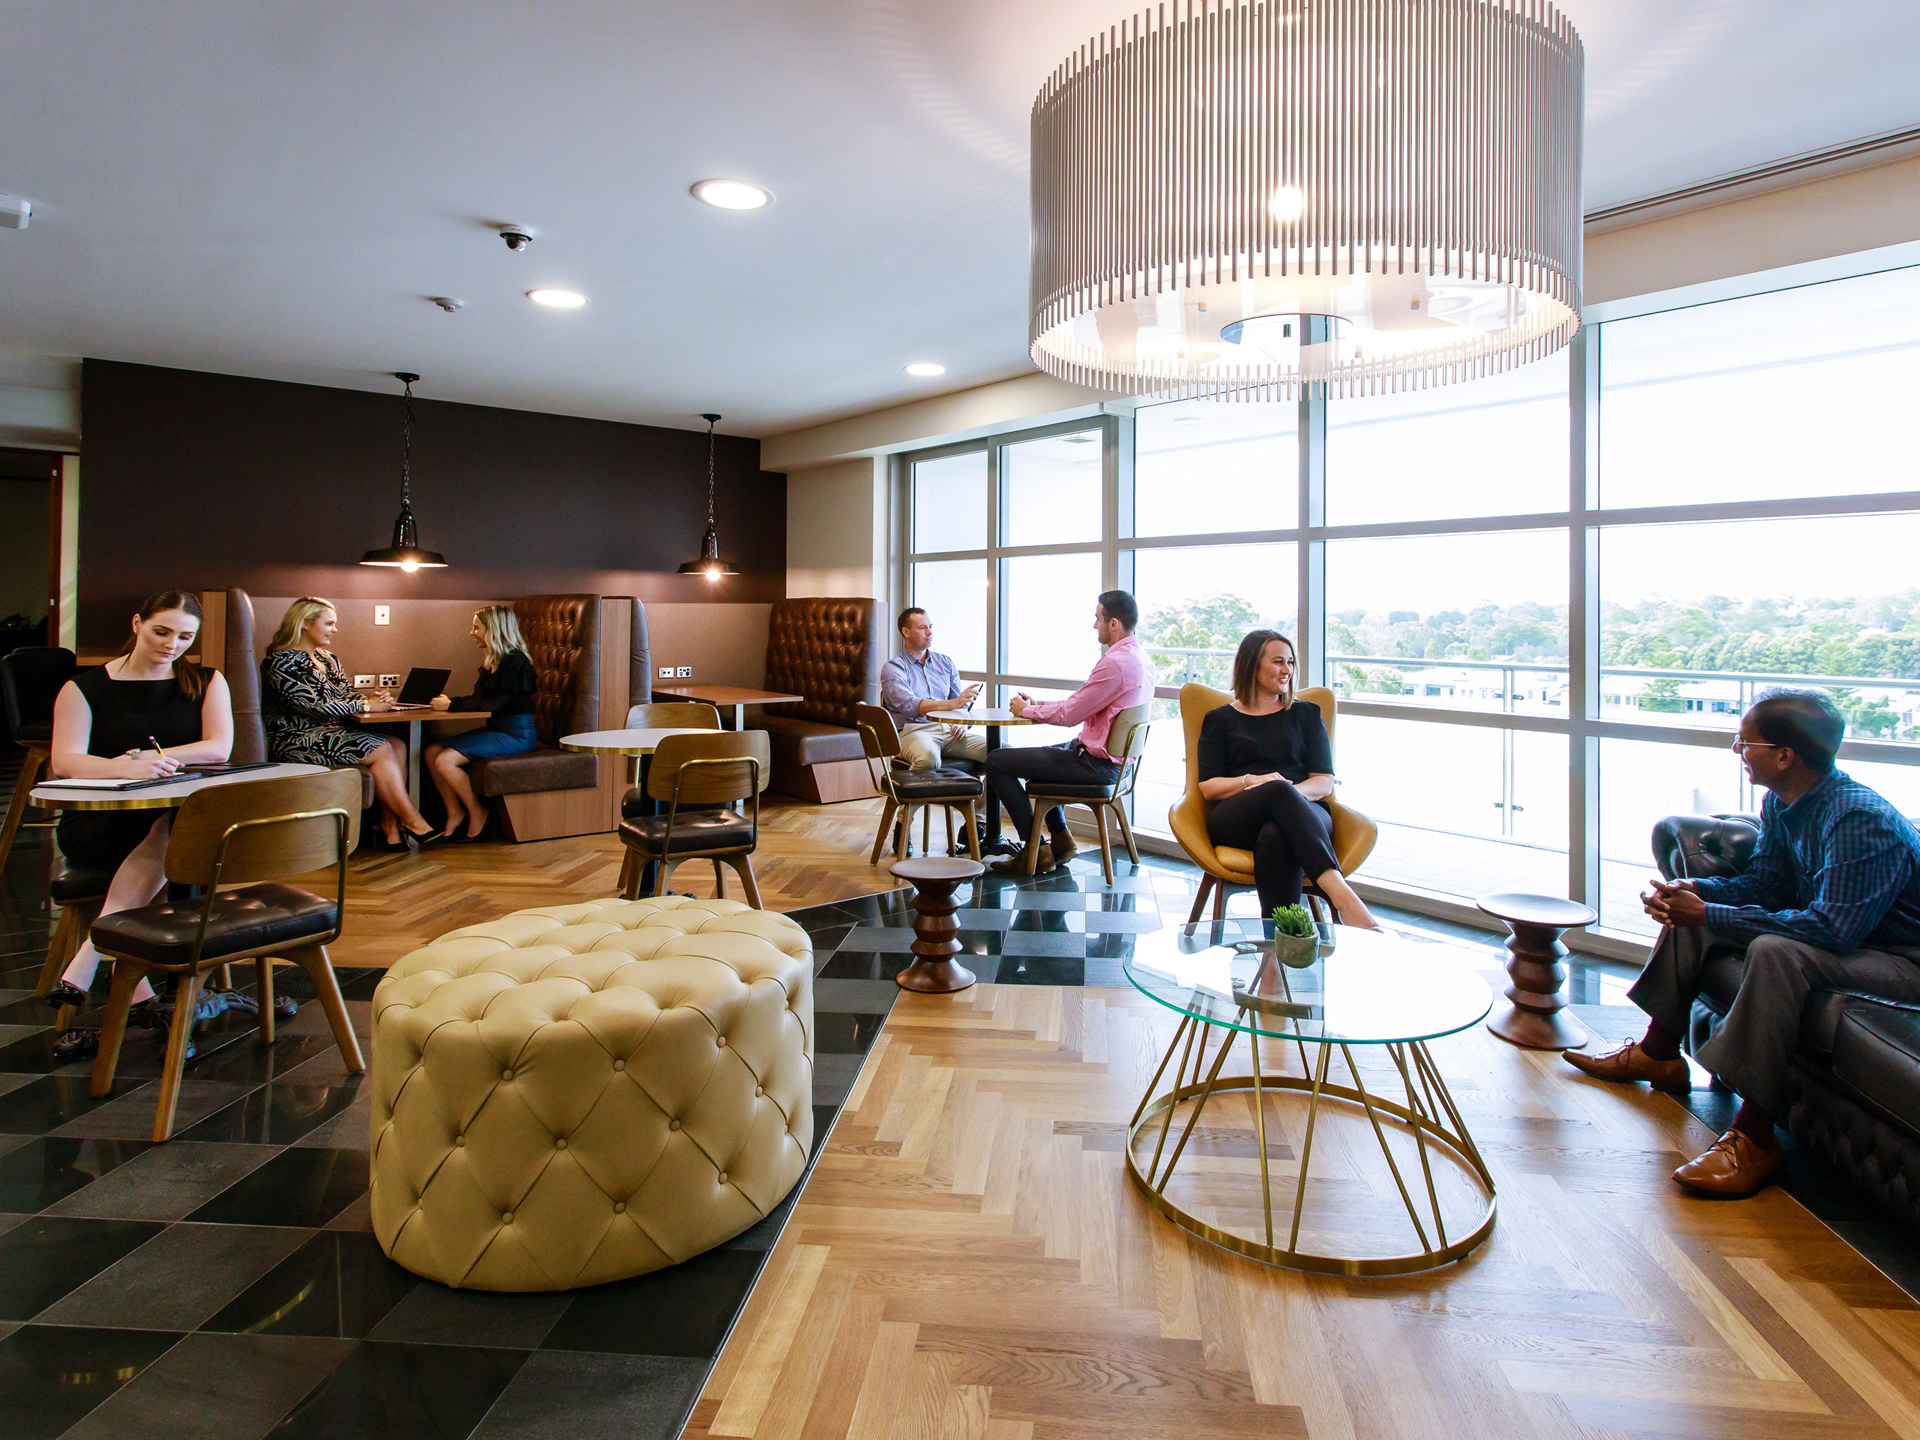 Private 2-person workspace with access to Coworking breakout areas